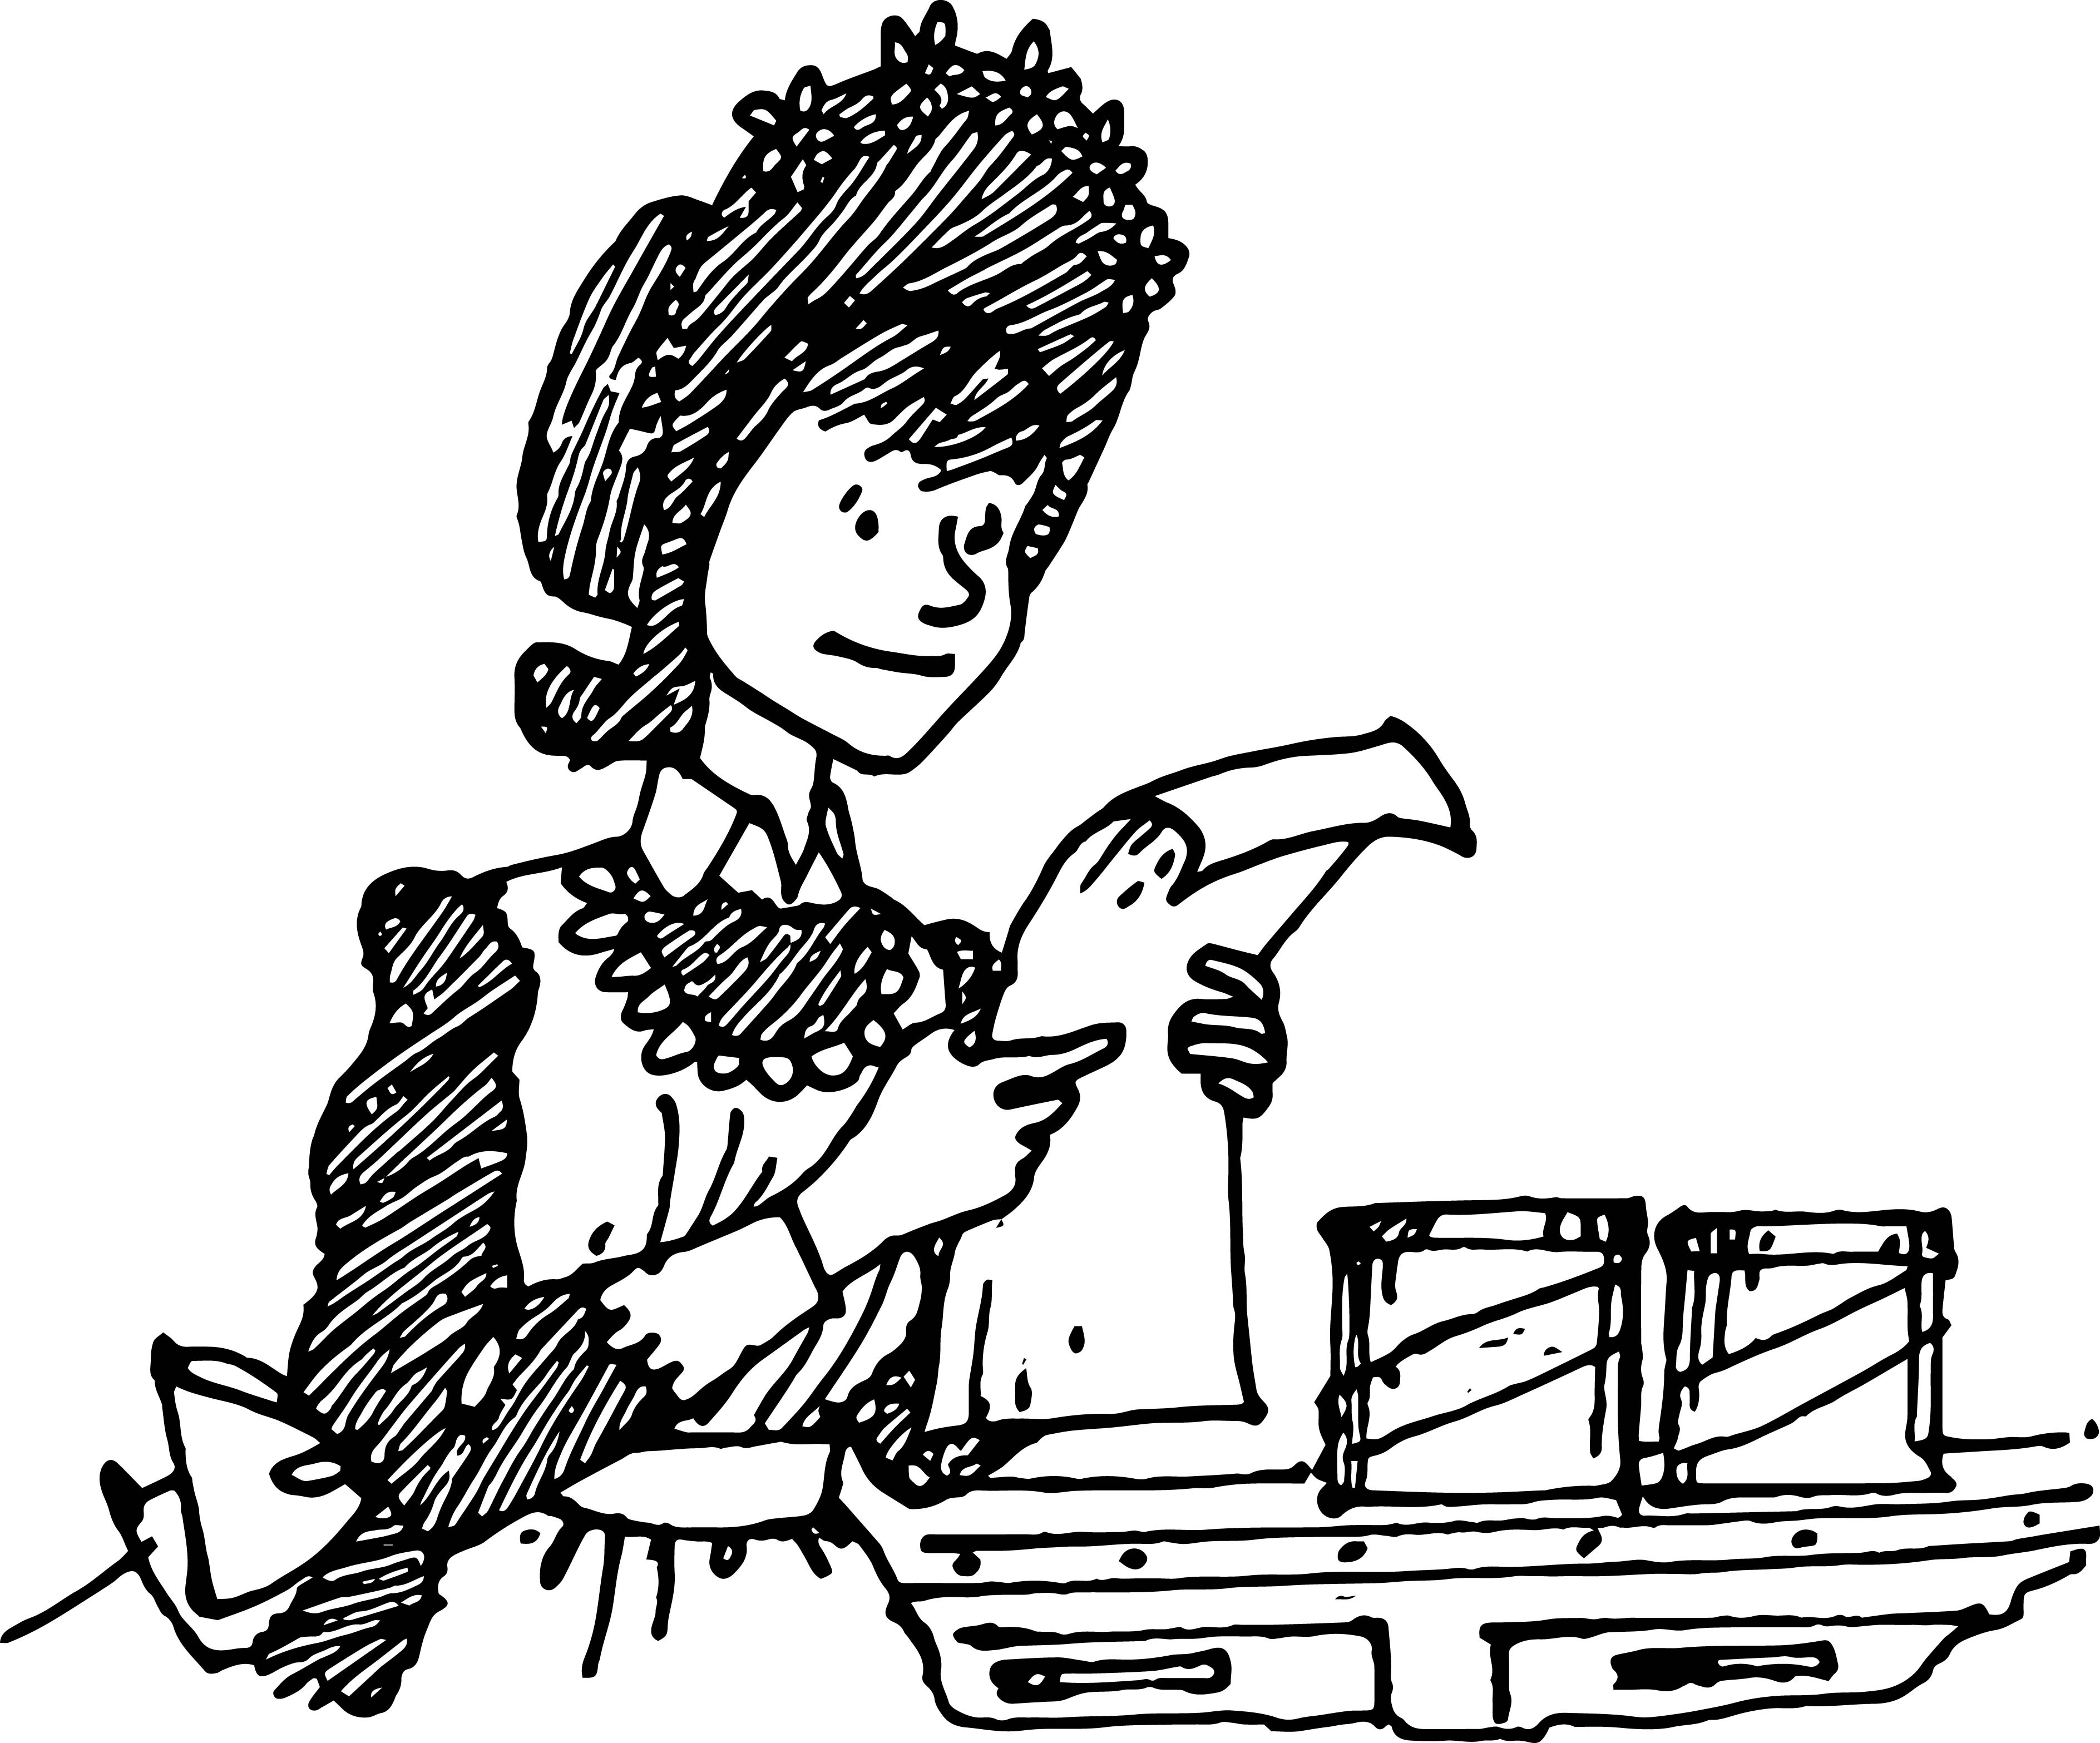 amelia bedelia coloring pages images for adults | Amelia Bedelia Read Paper Coloring Page | Wecoloringpage.com